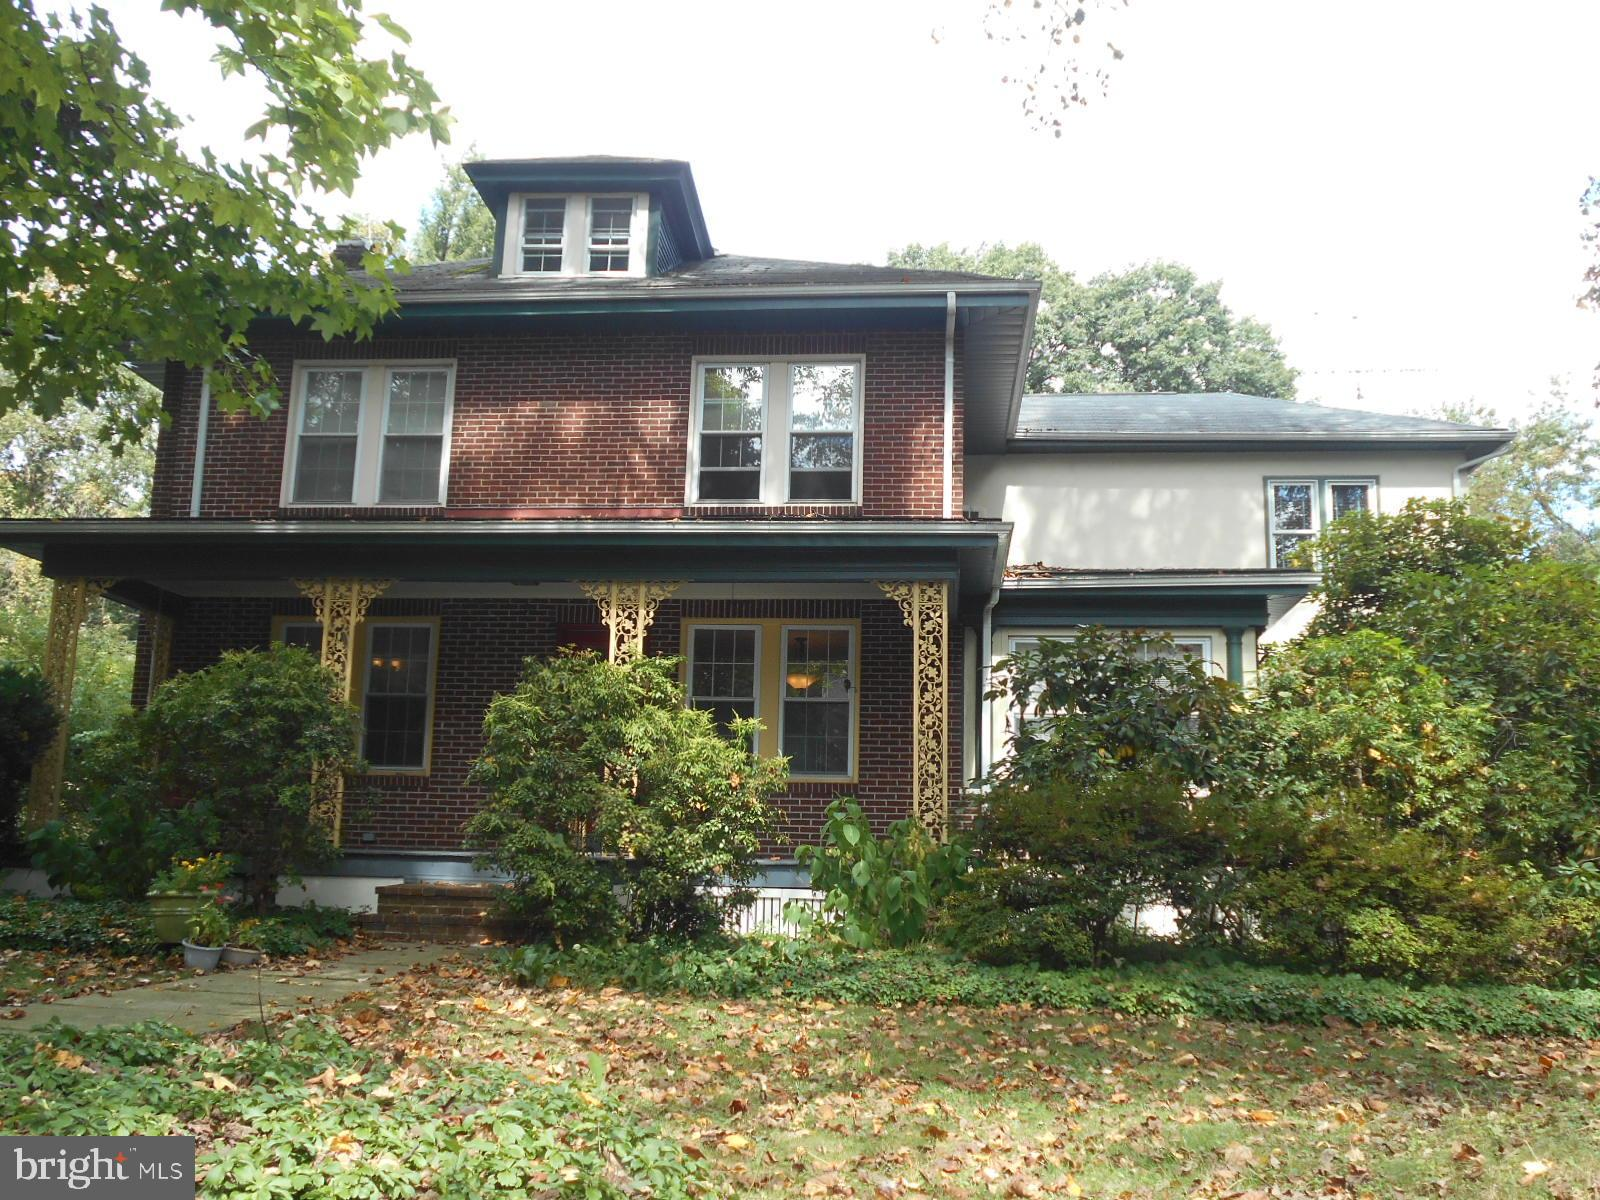 61 PARK ROAD, READING, PA 19609